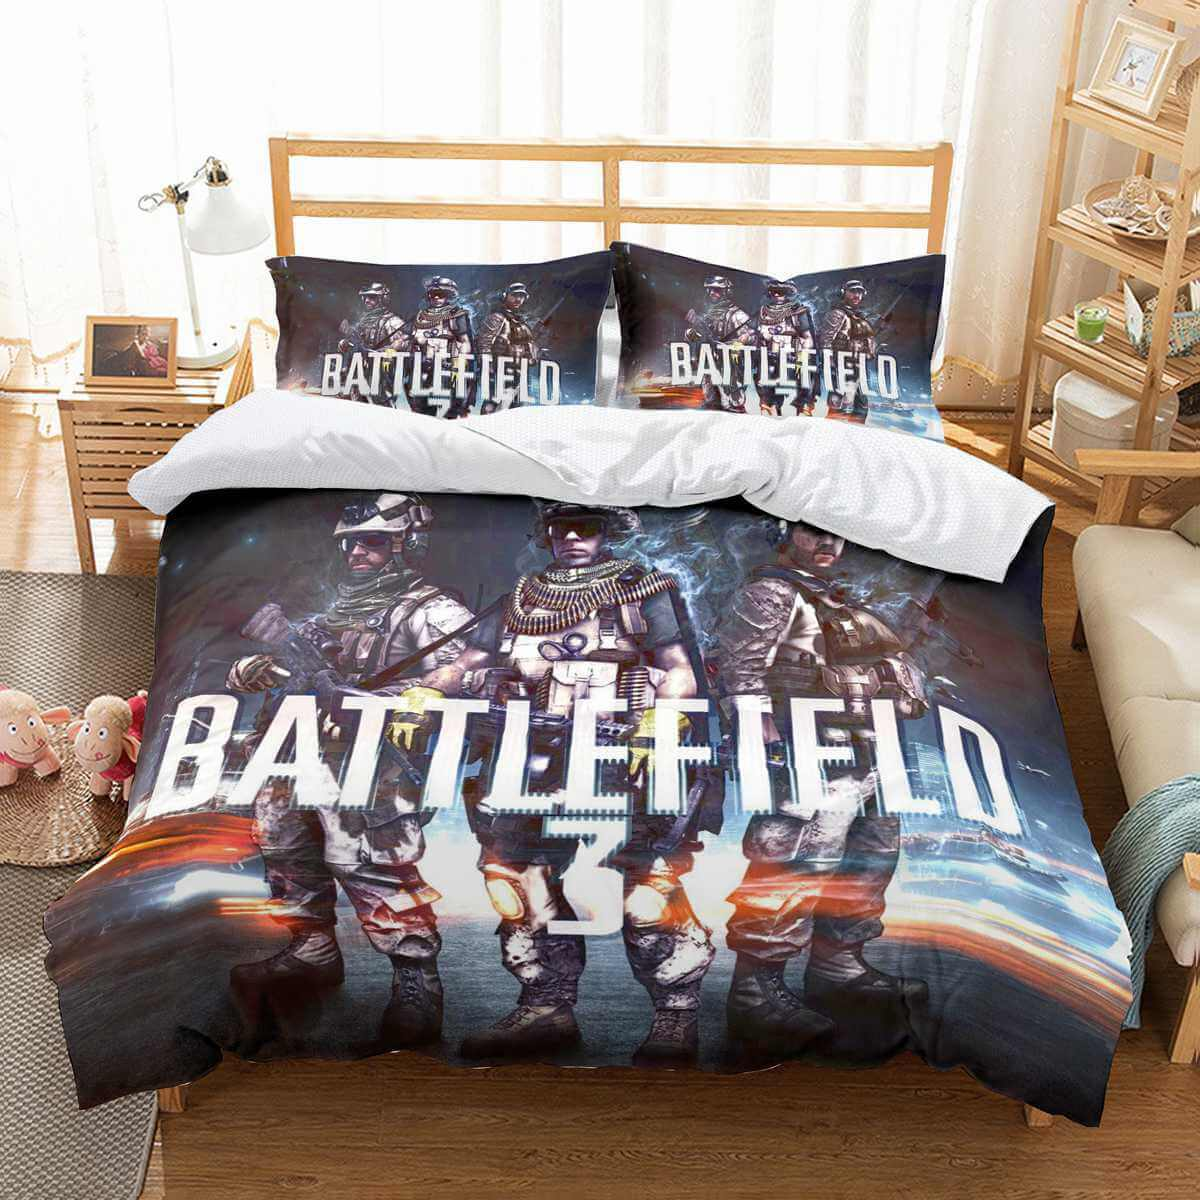 3D Customize Battlefield Bedding Set Duvet Cover Set Bedroom Set Bedlinen